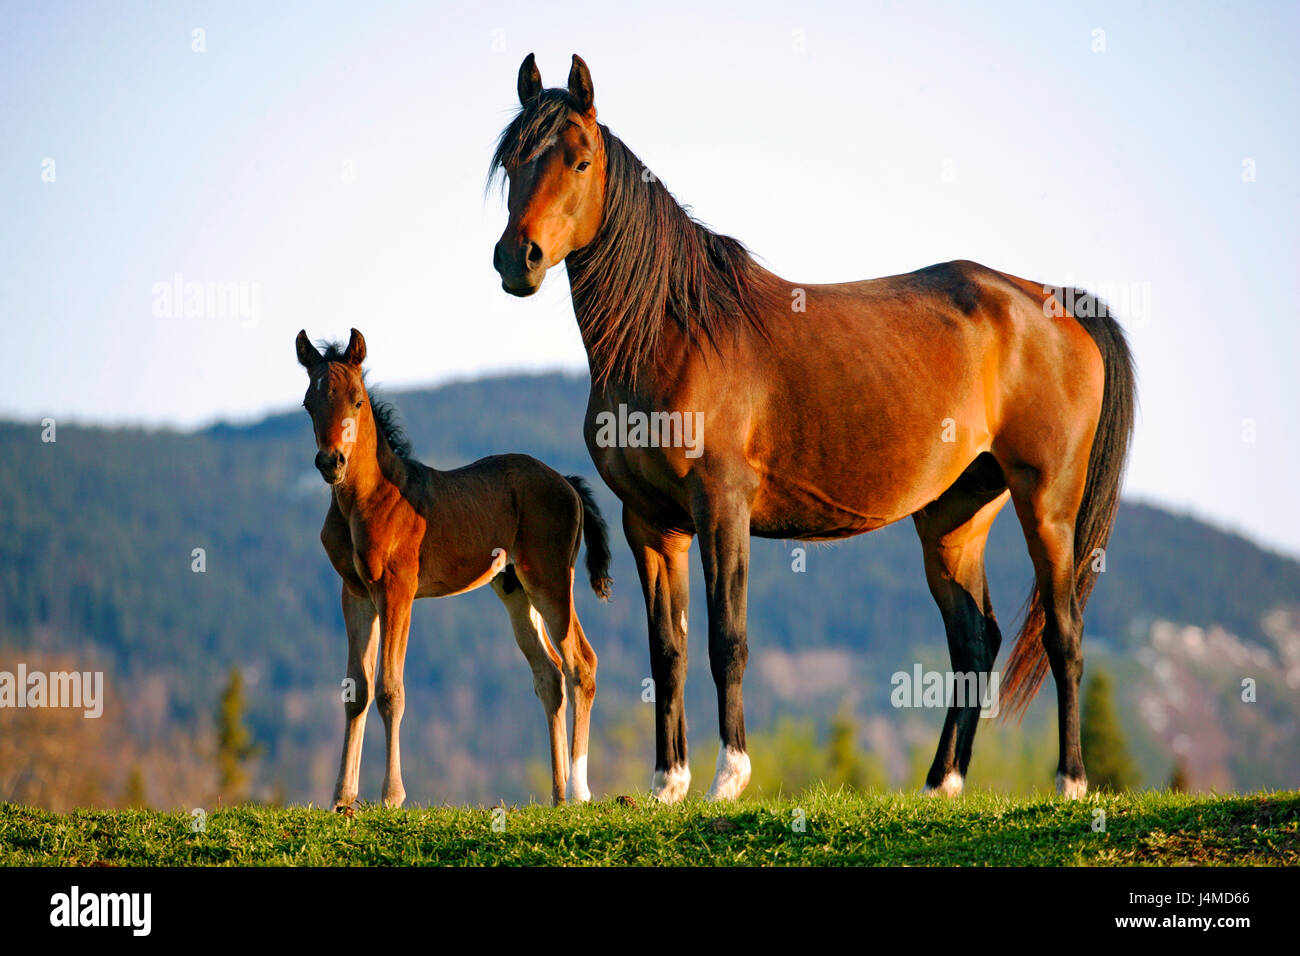 Purebred Bay Arabian Mare with few week old Foal standing together at pasture. - Stock Image